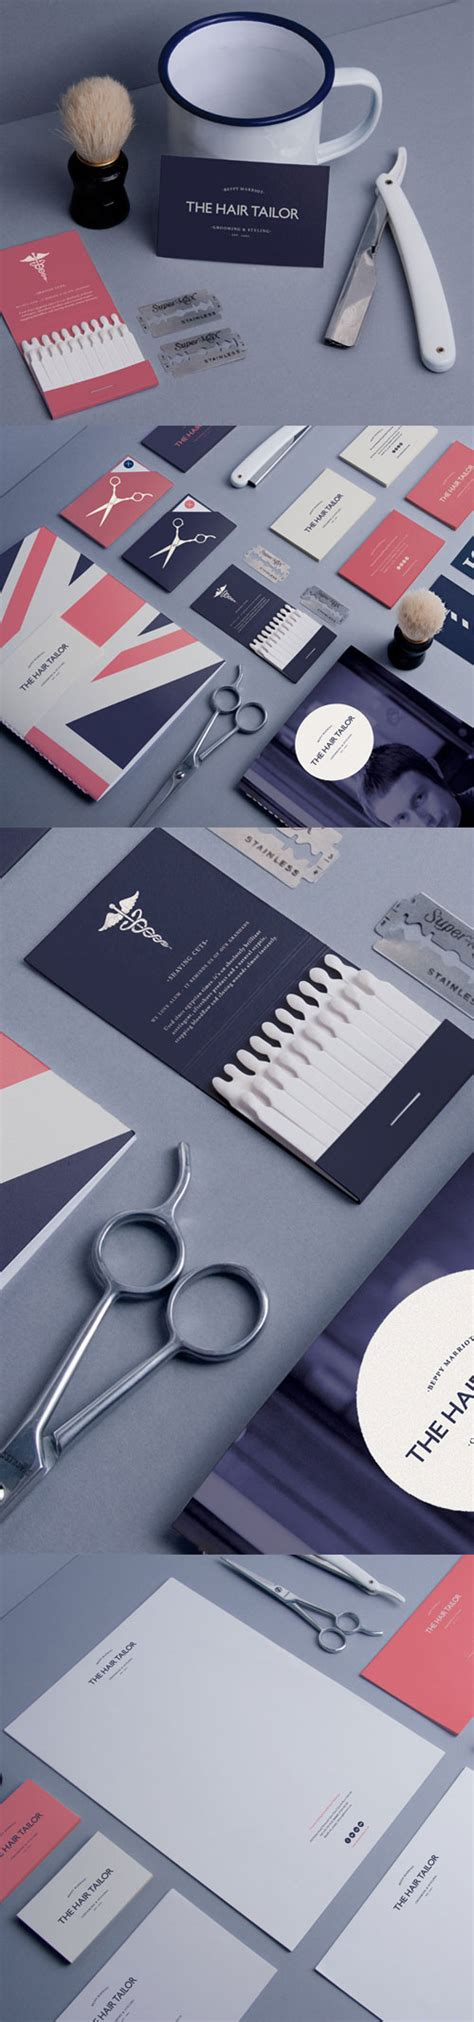 best corporate identity design 40 best corporate identity design for inspiration in ksa